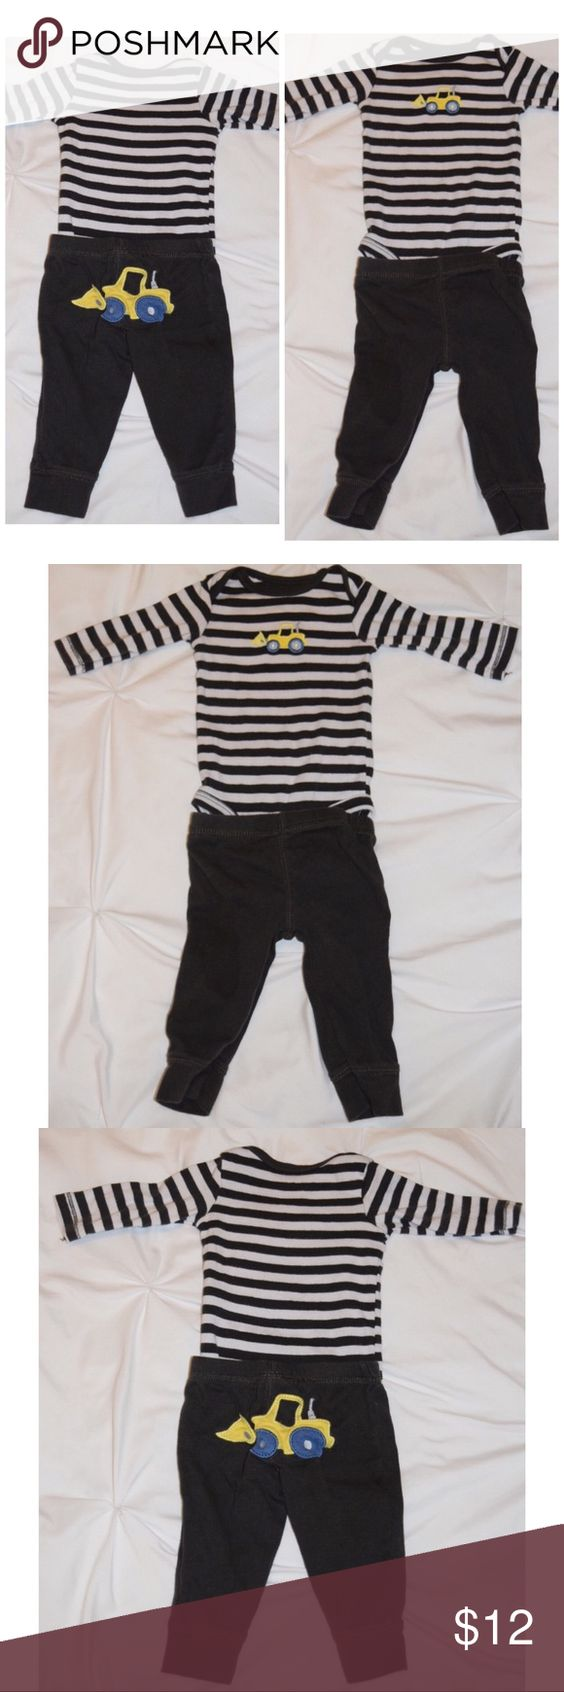 Two piece set Cute two piece baby set for baby boy Carter's Matching Sets